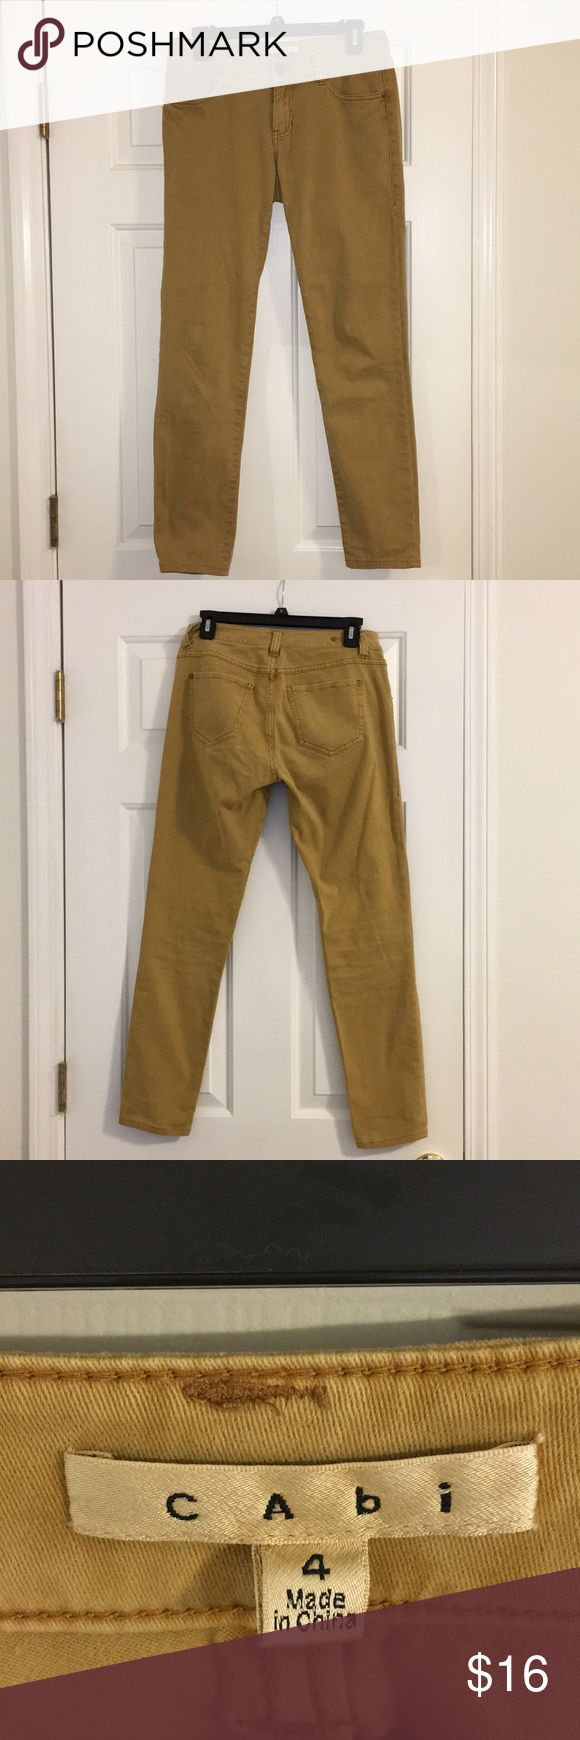 💛🧡 CAbi Tan/Gold Jeans CAbi jeans in a gold/tan, almost mustard yellow color. Super cute! Excellent, like-new condition! CAbi Jeans